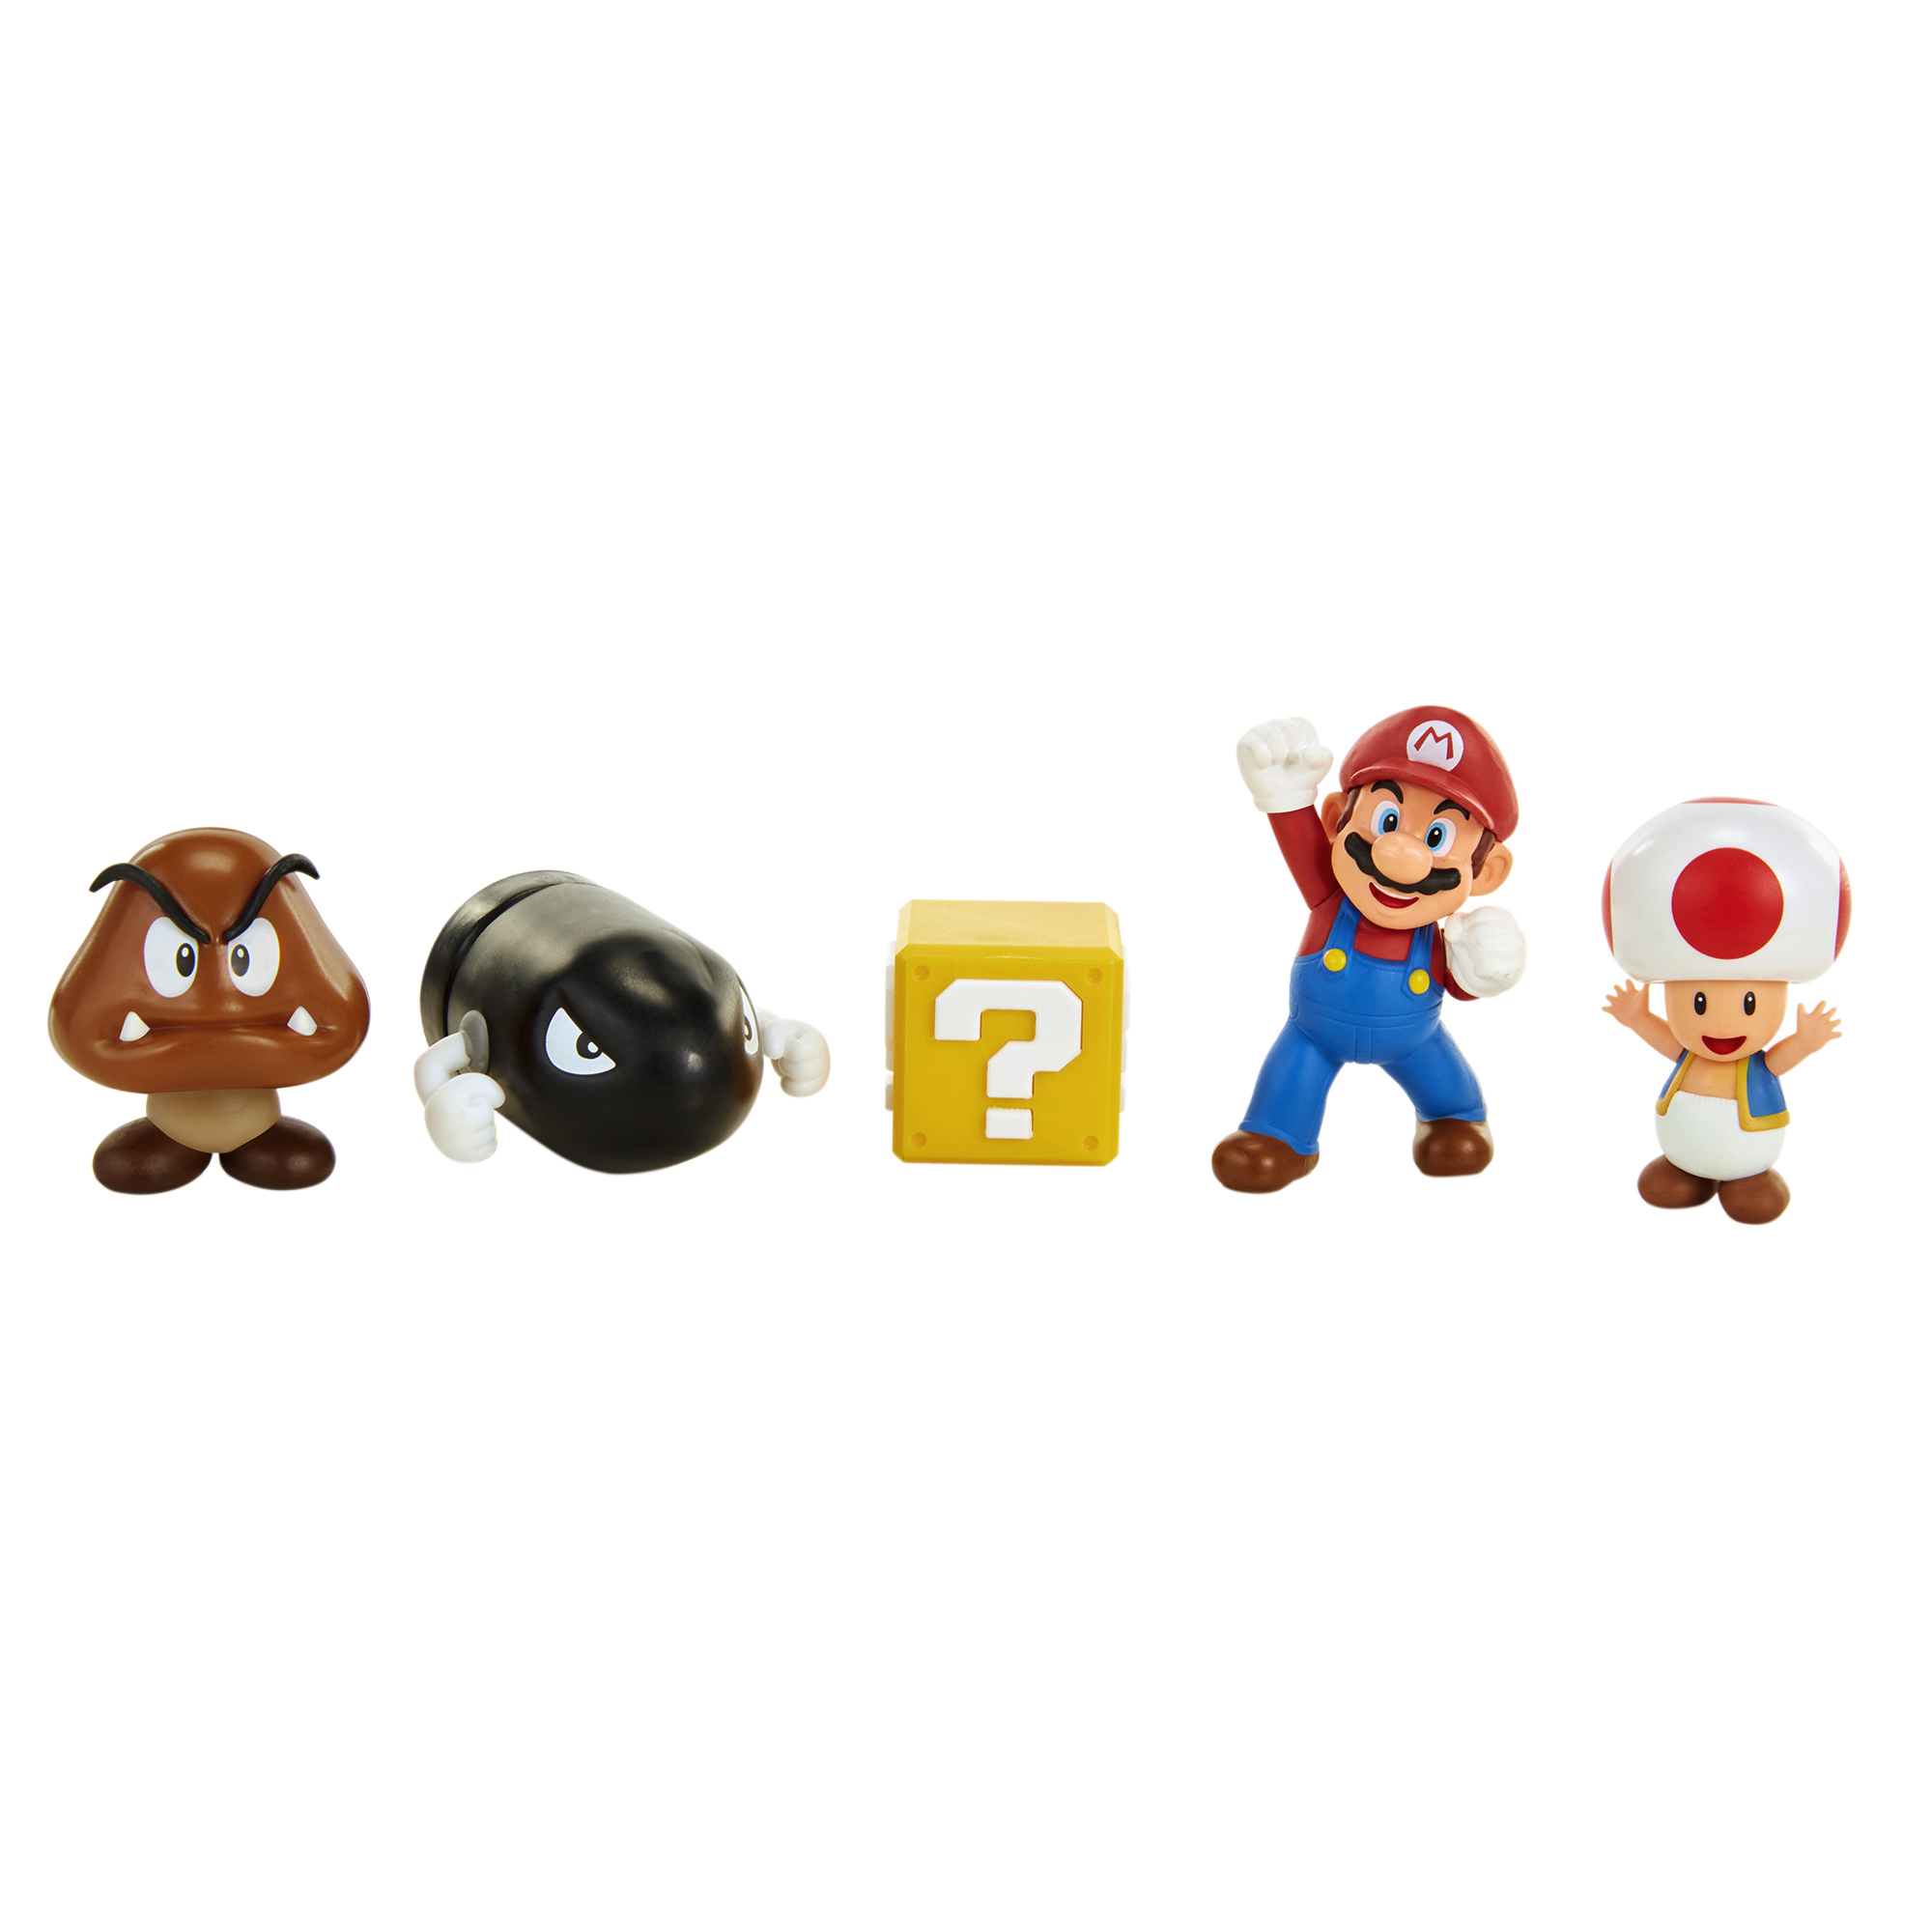 Super Mario 2.5 5 Figure Mario Acorn Plains Figure Set